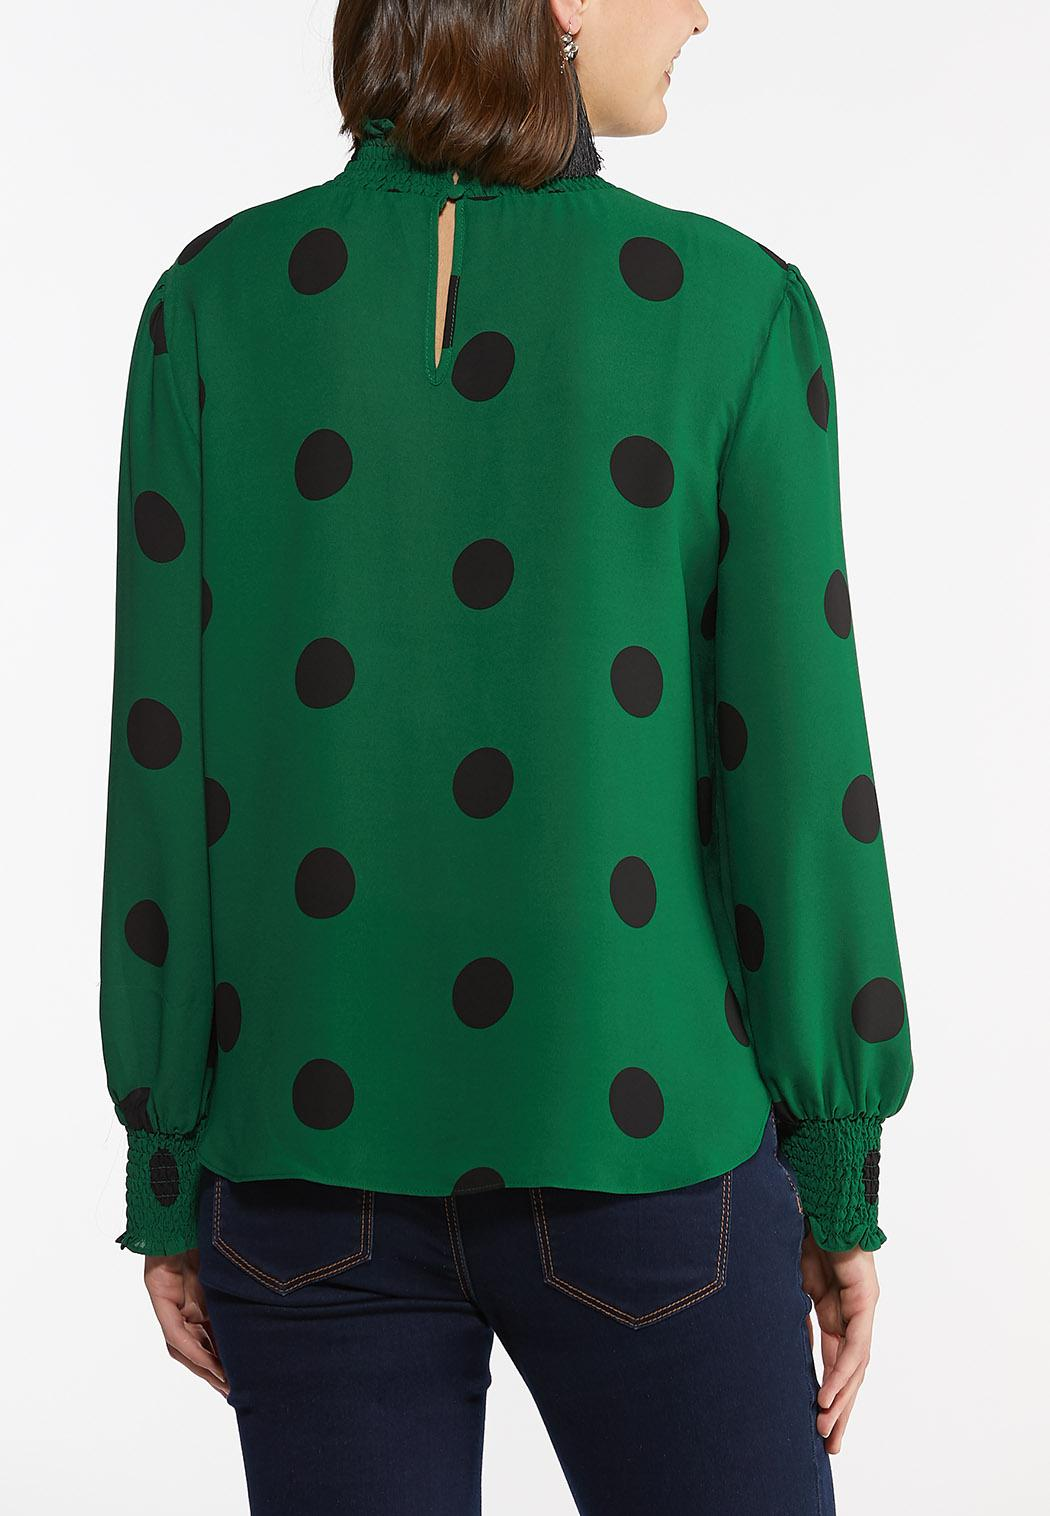 Dotted Mock Neck Top (Item #44396726)